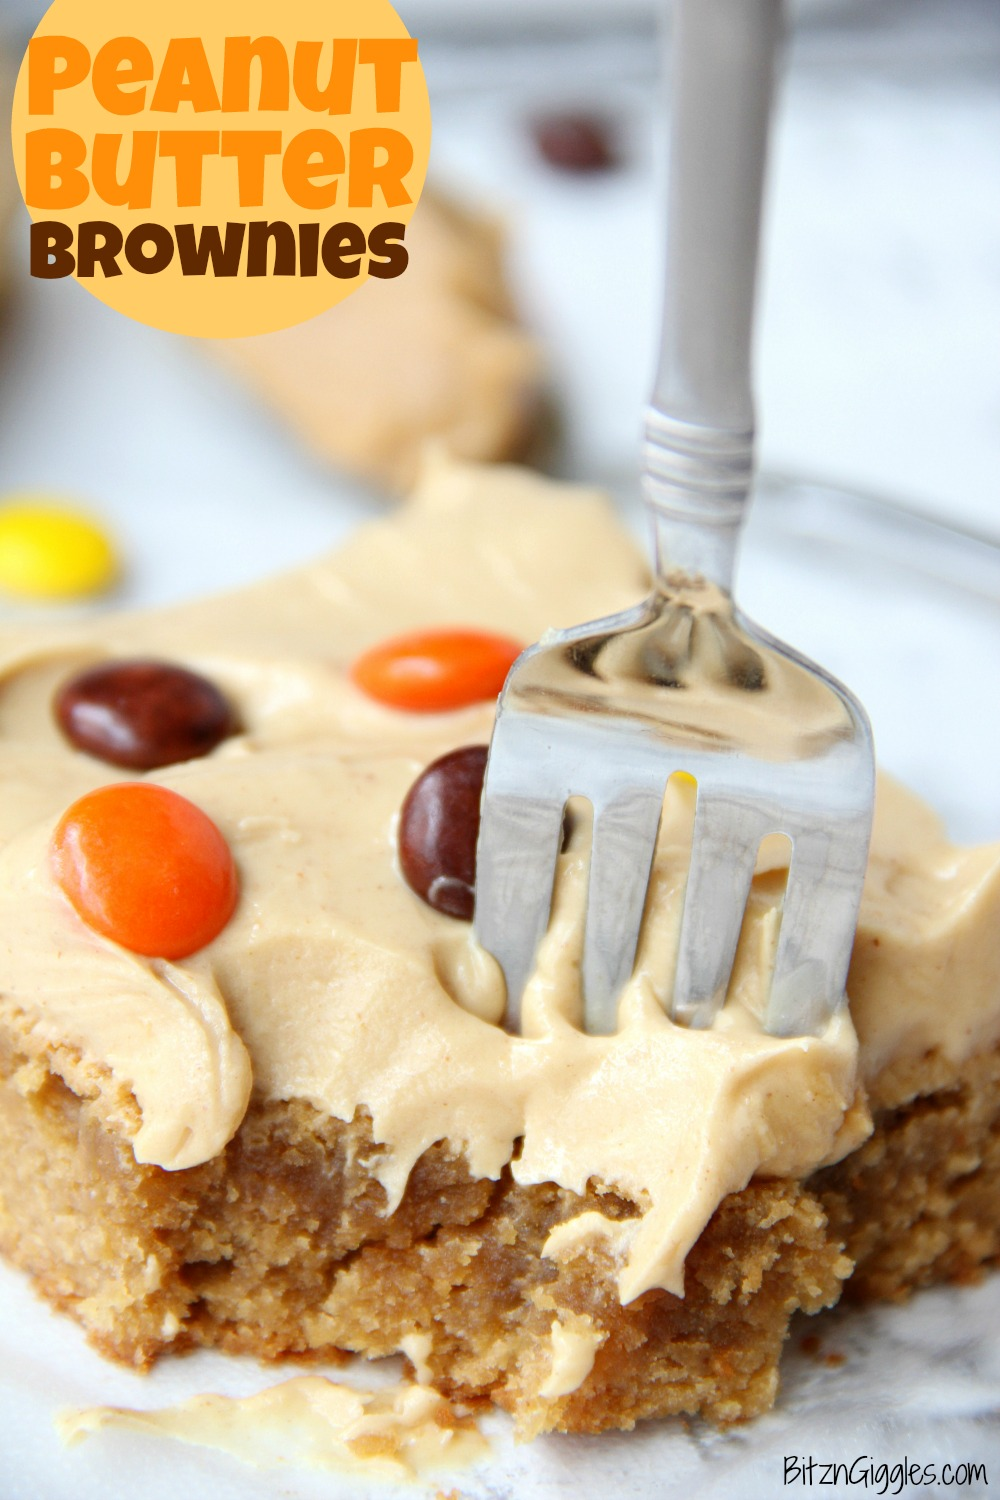 Peanut Butter Brownies – For the peanut butter lovers! Moist, cake-like peanut butter brownies topped with light and fluffy peanut butter frosting!